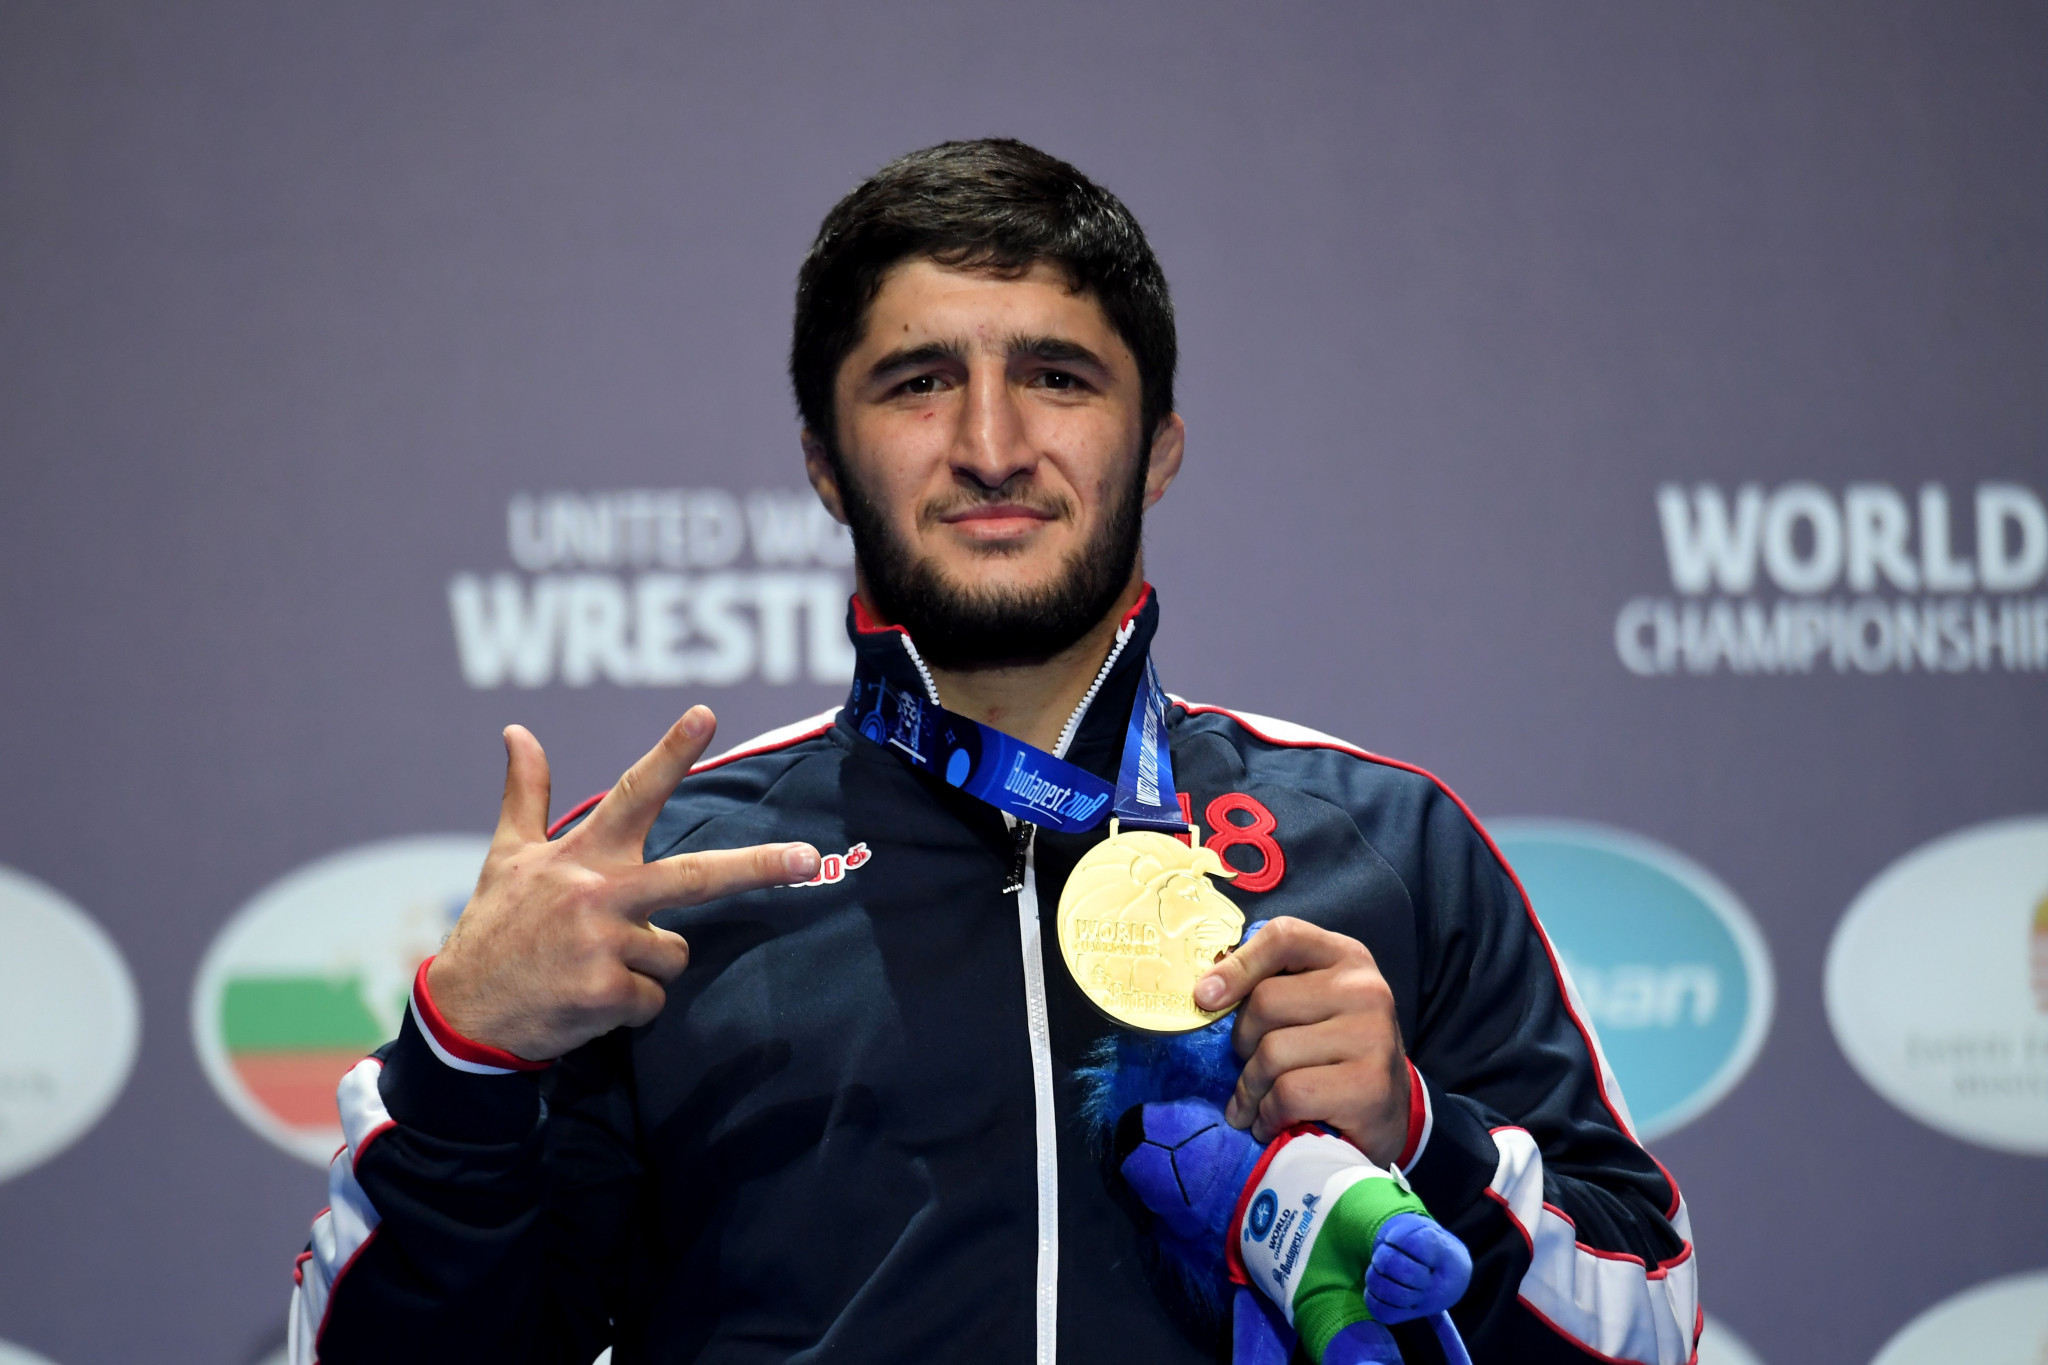 Russia's Abdulrashid Sadulaev retained his 97kg title at the Wrestling World Championships ©Getty Images